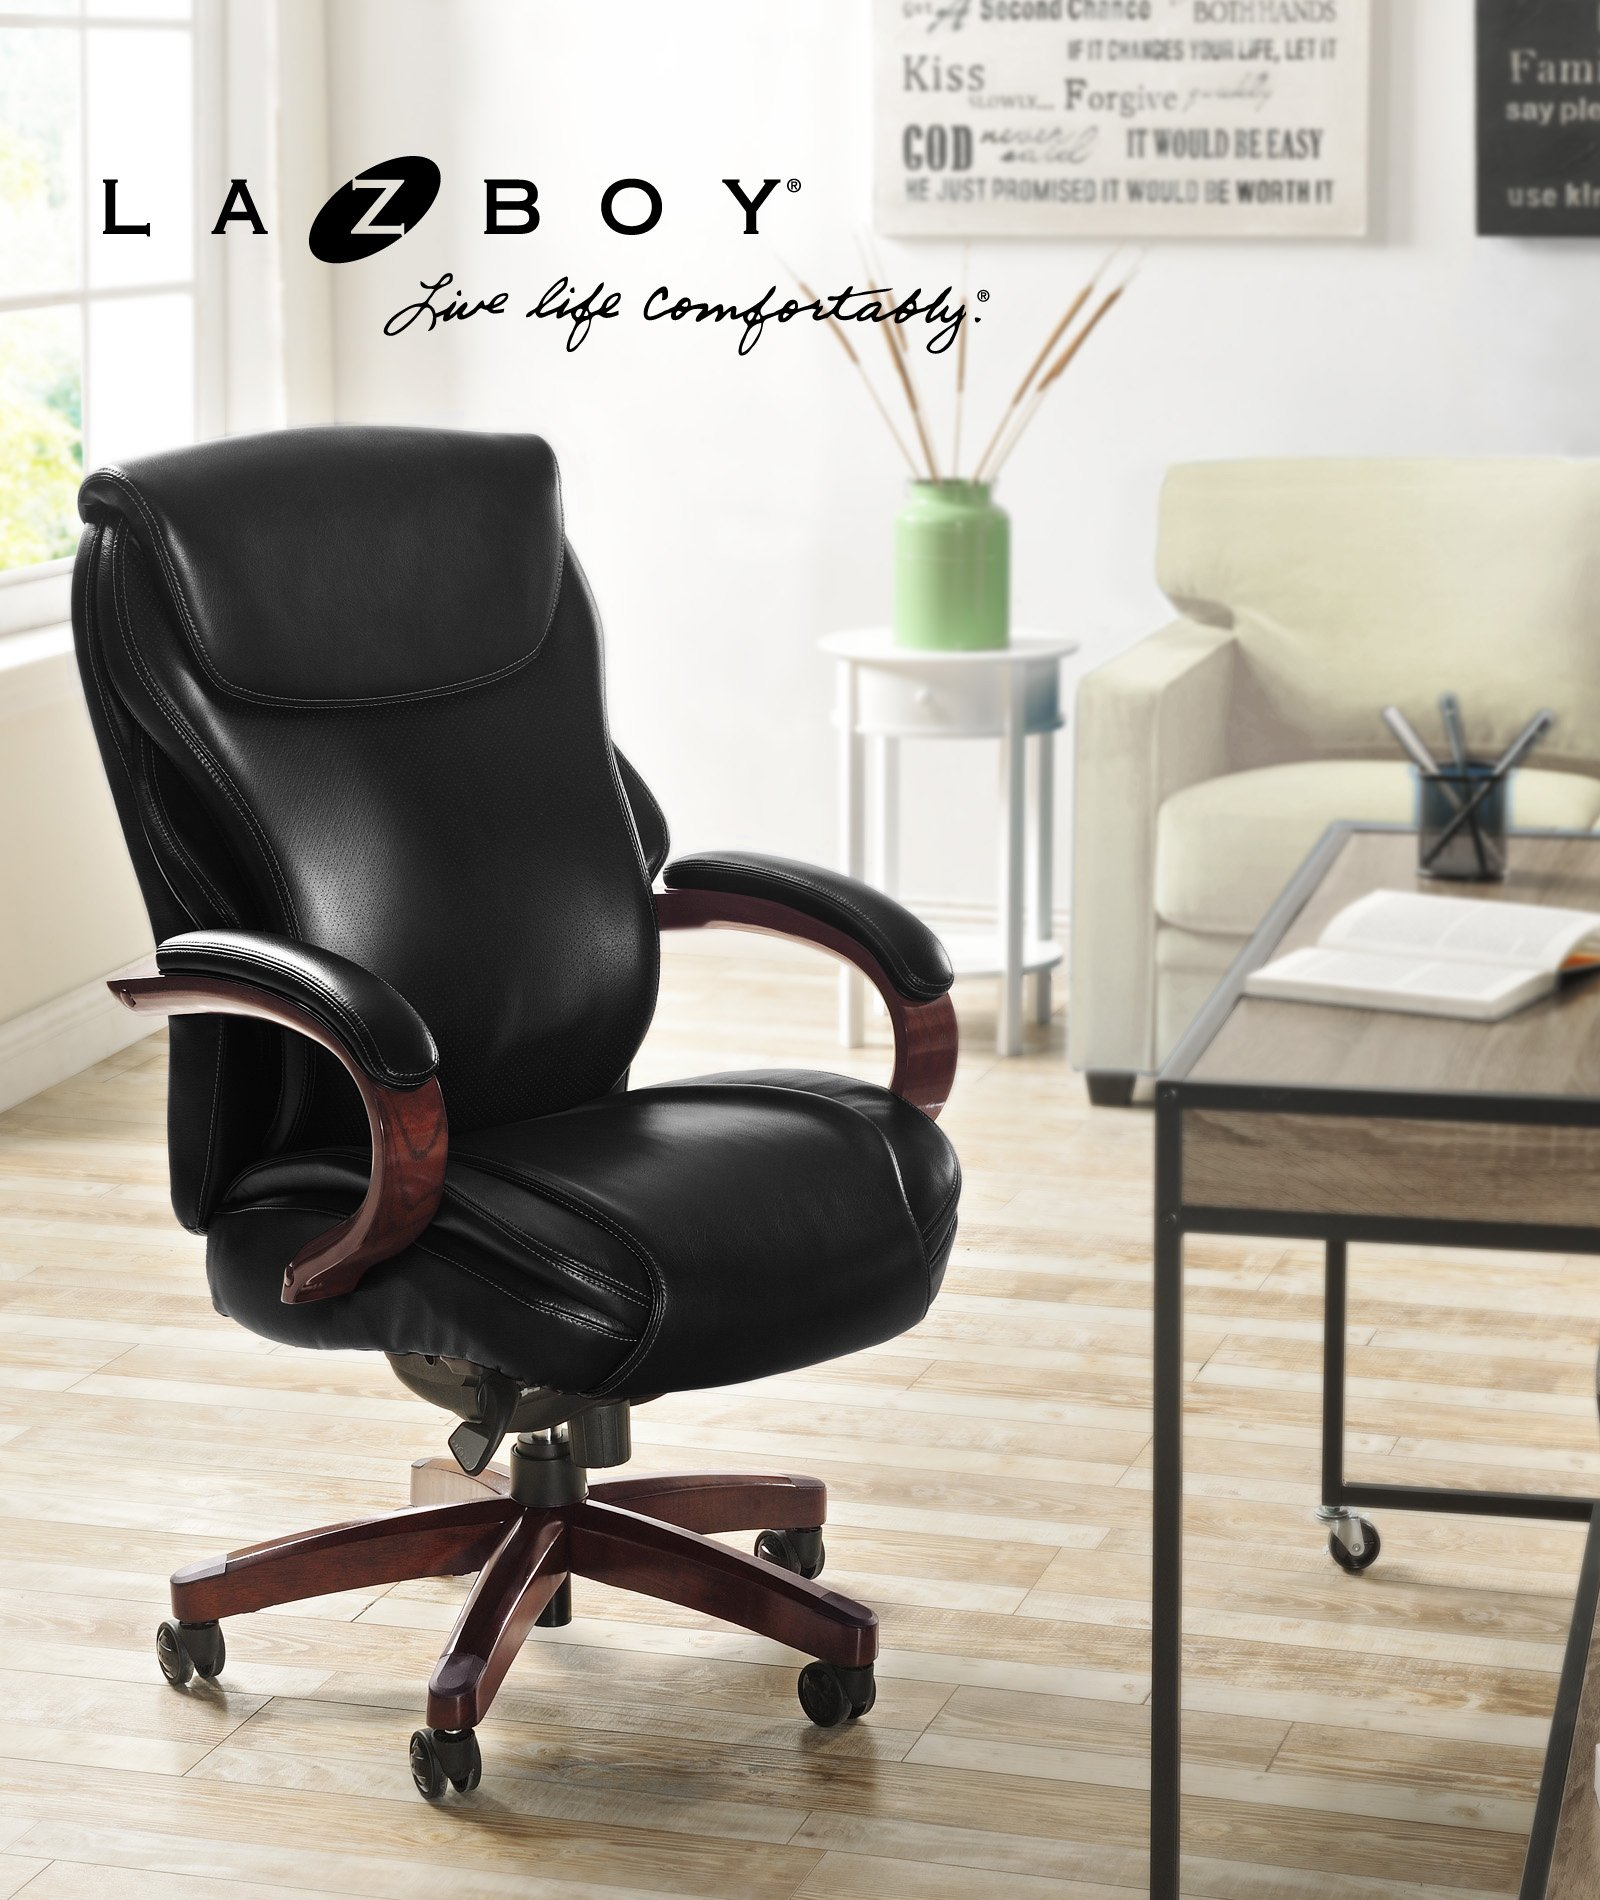 La Z Boy  Hyland Chair Air Technology Office, Executive, Black by La-Z-Boy